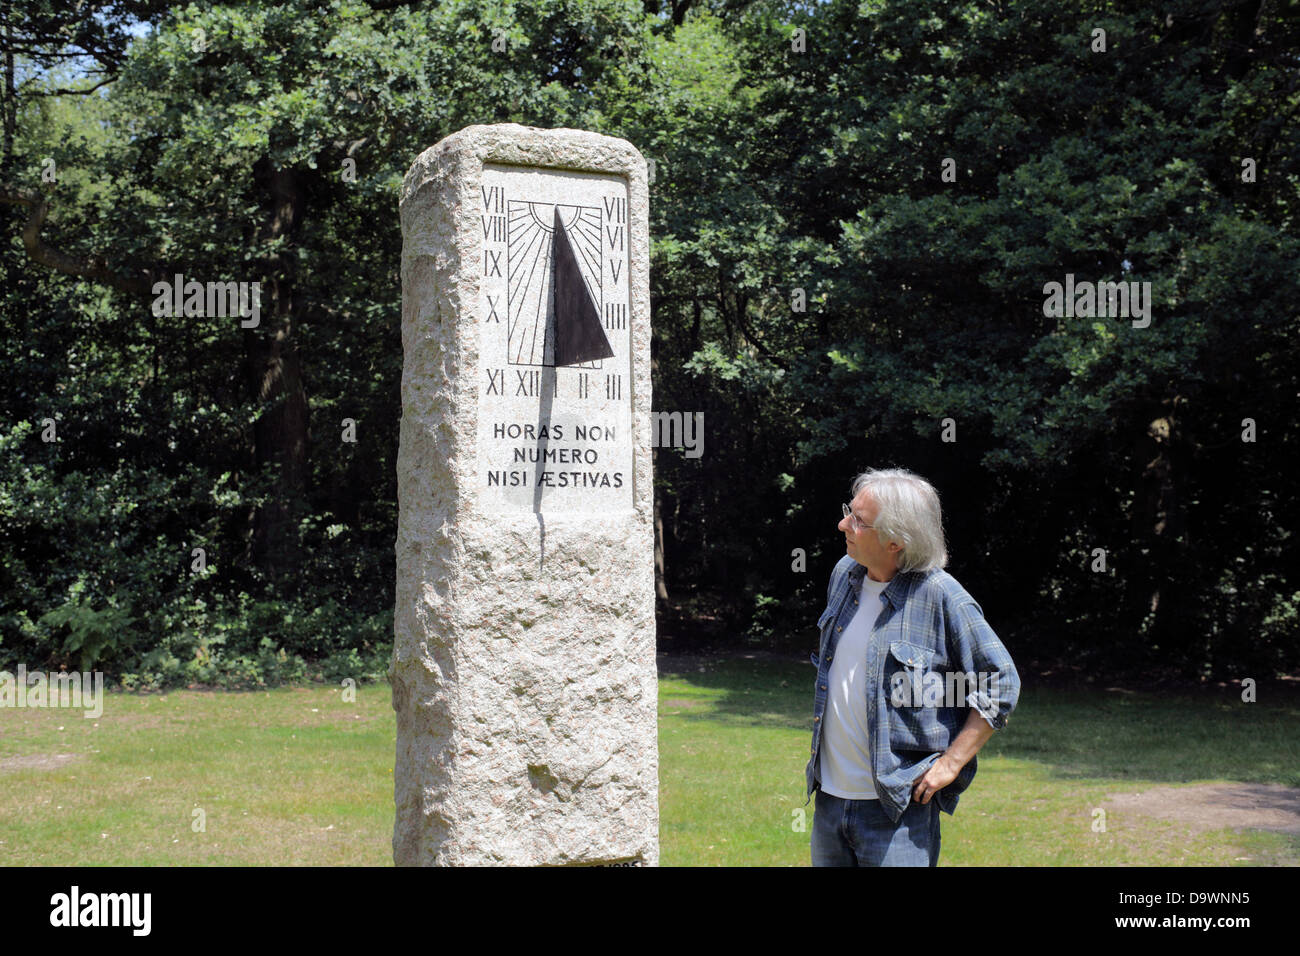 The Willett Memorial sundial, Petts Wood, south London. - Stock Image